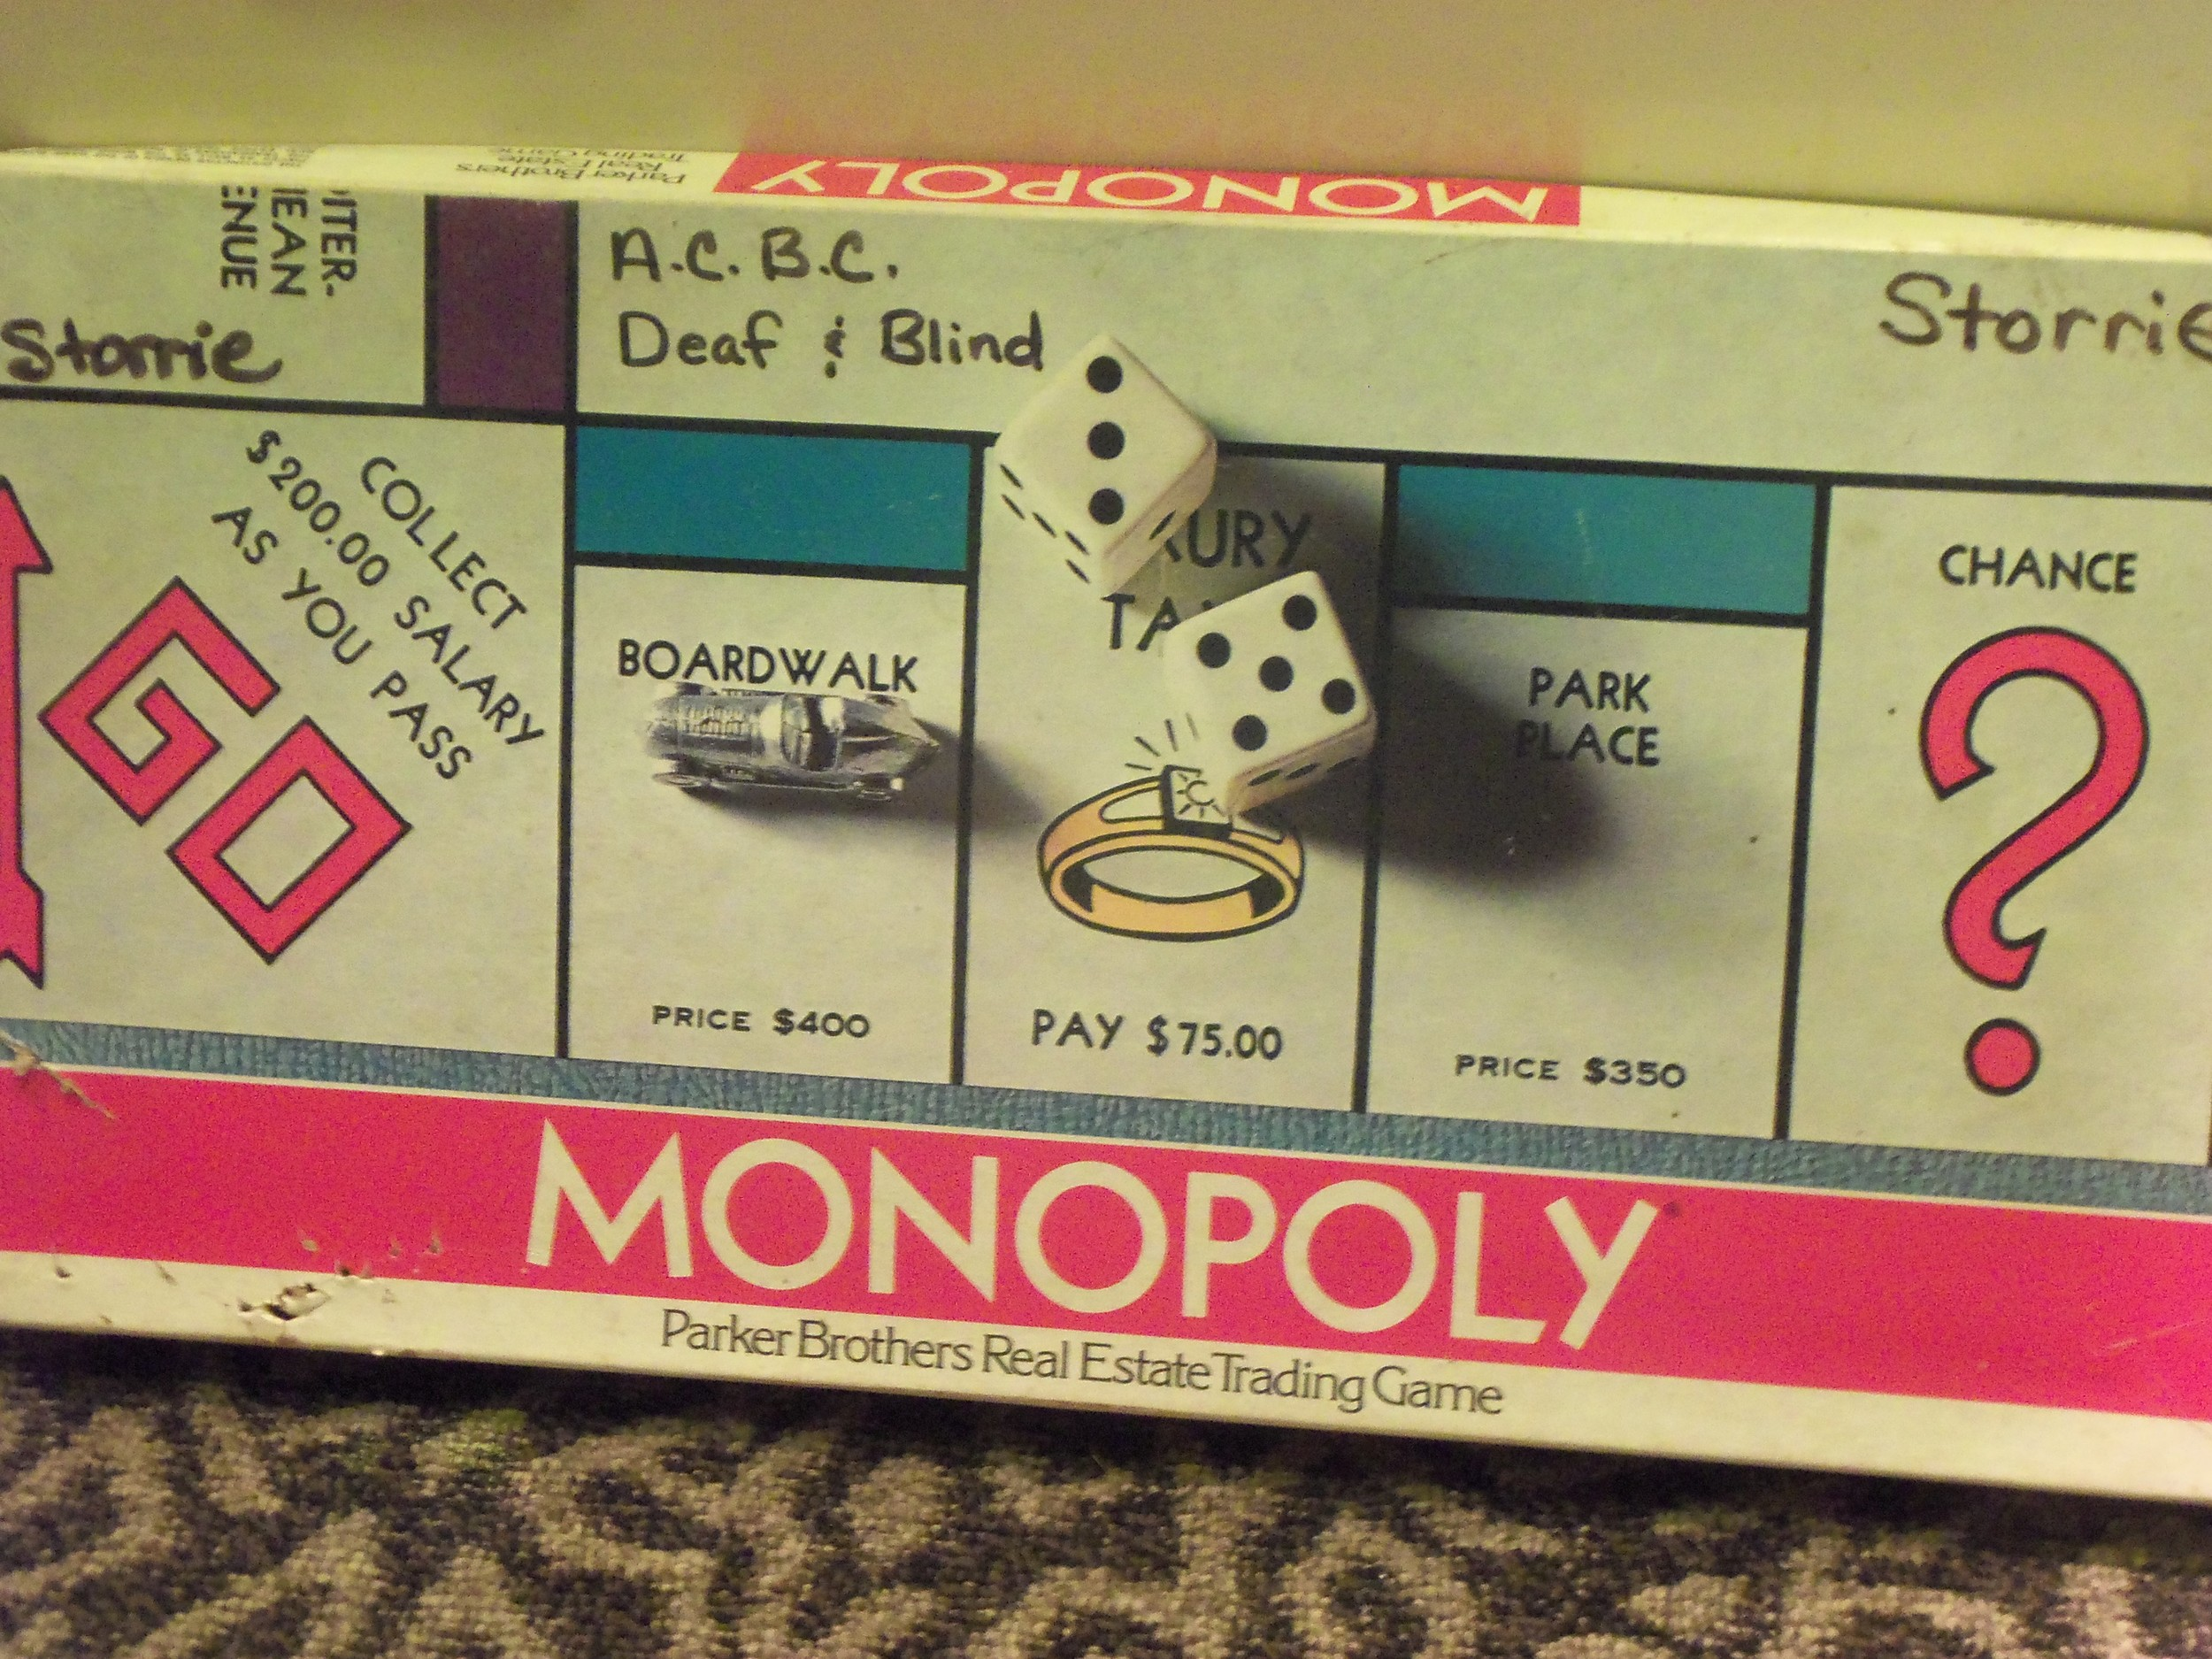 MONOPOLY GAME OWNED BY KATHY STORRIE FOR 40 YEARS